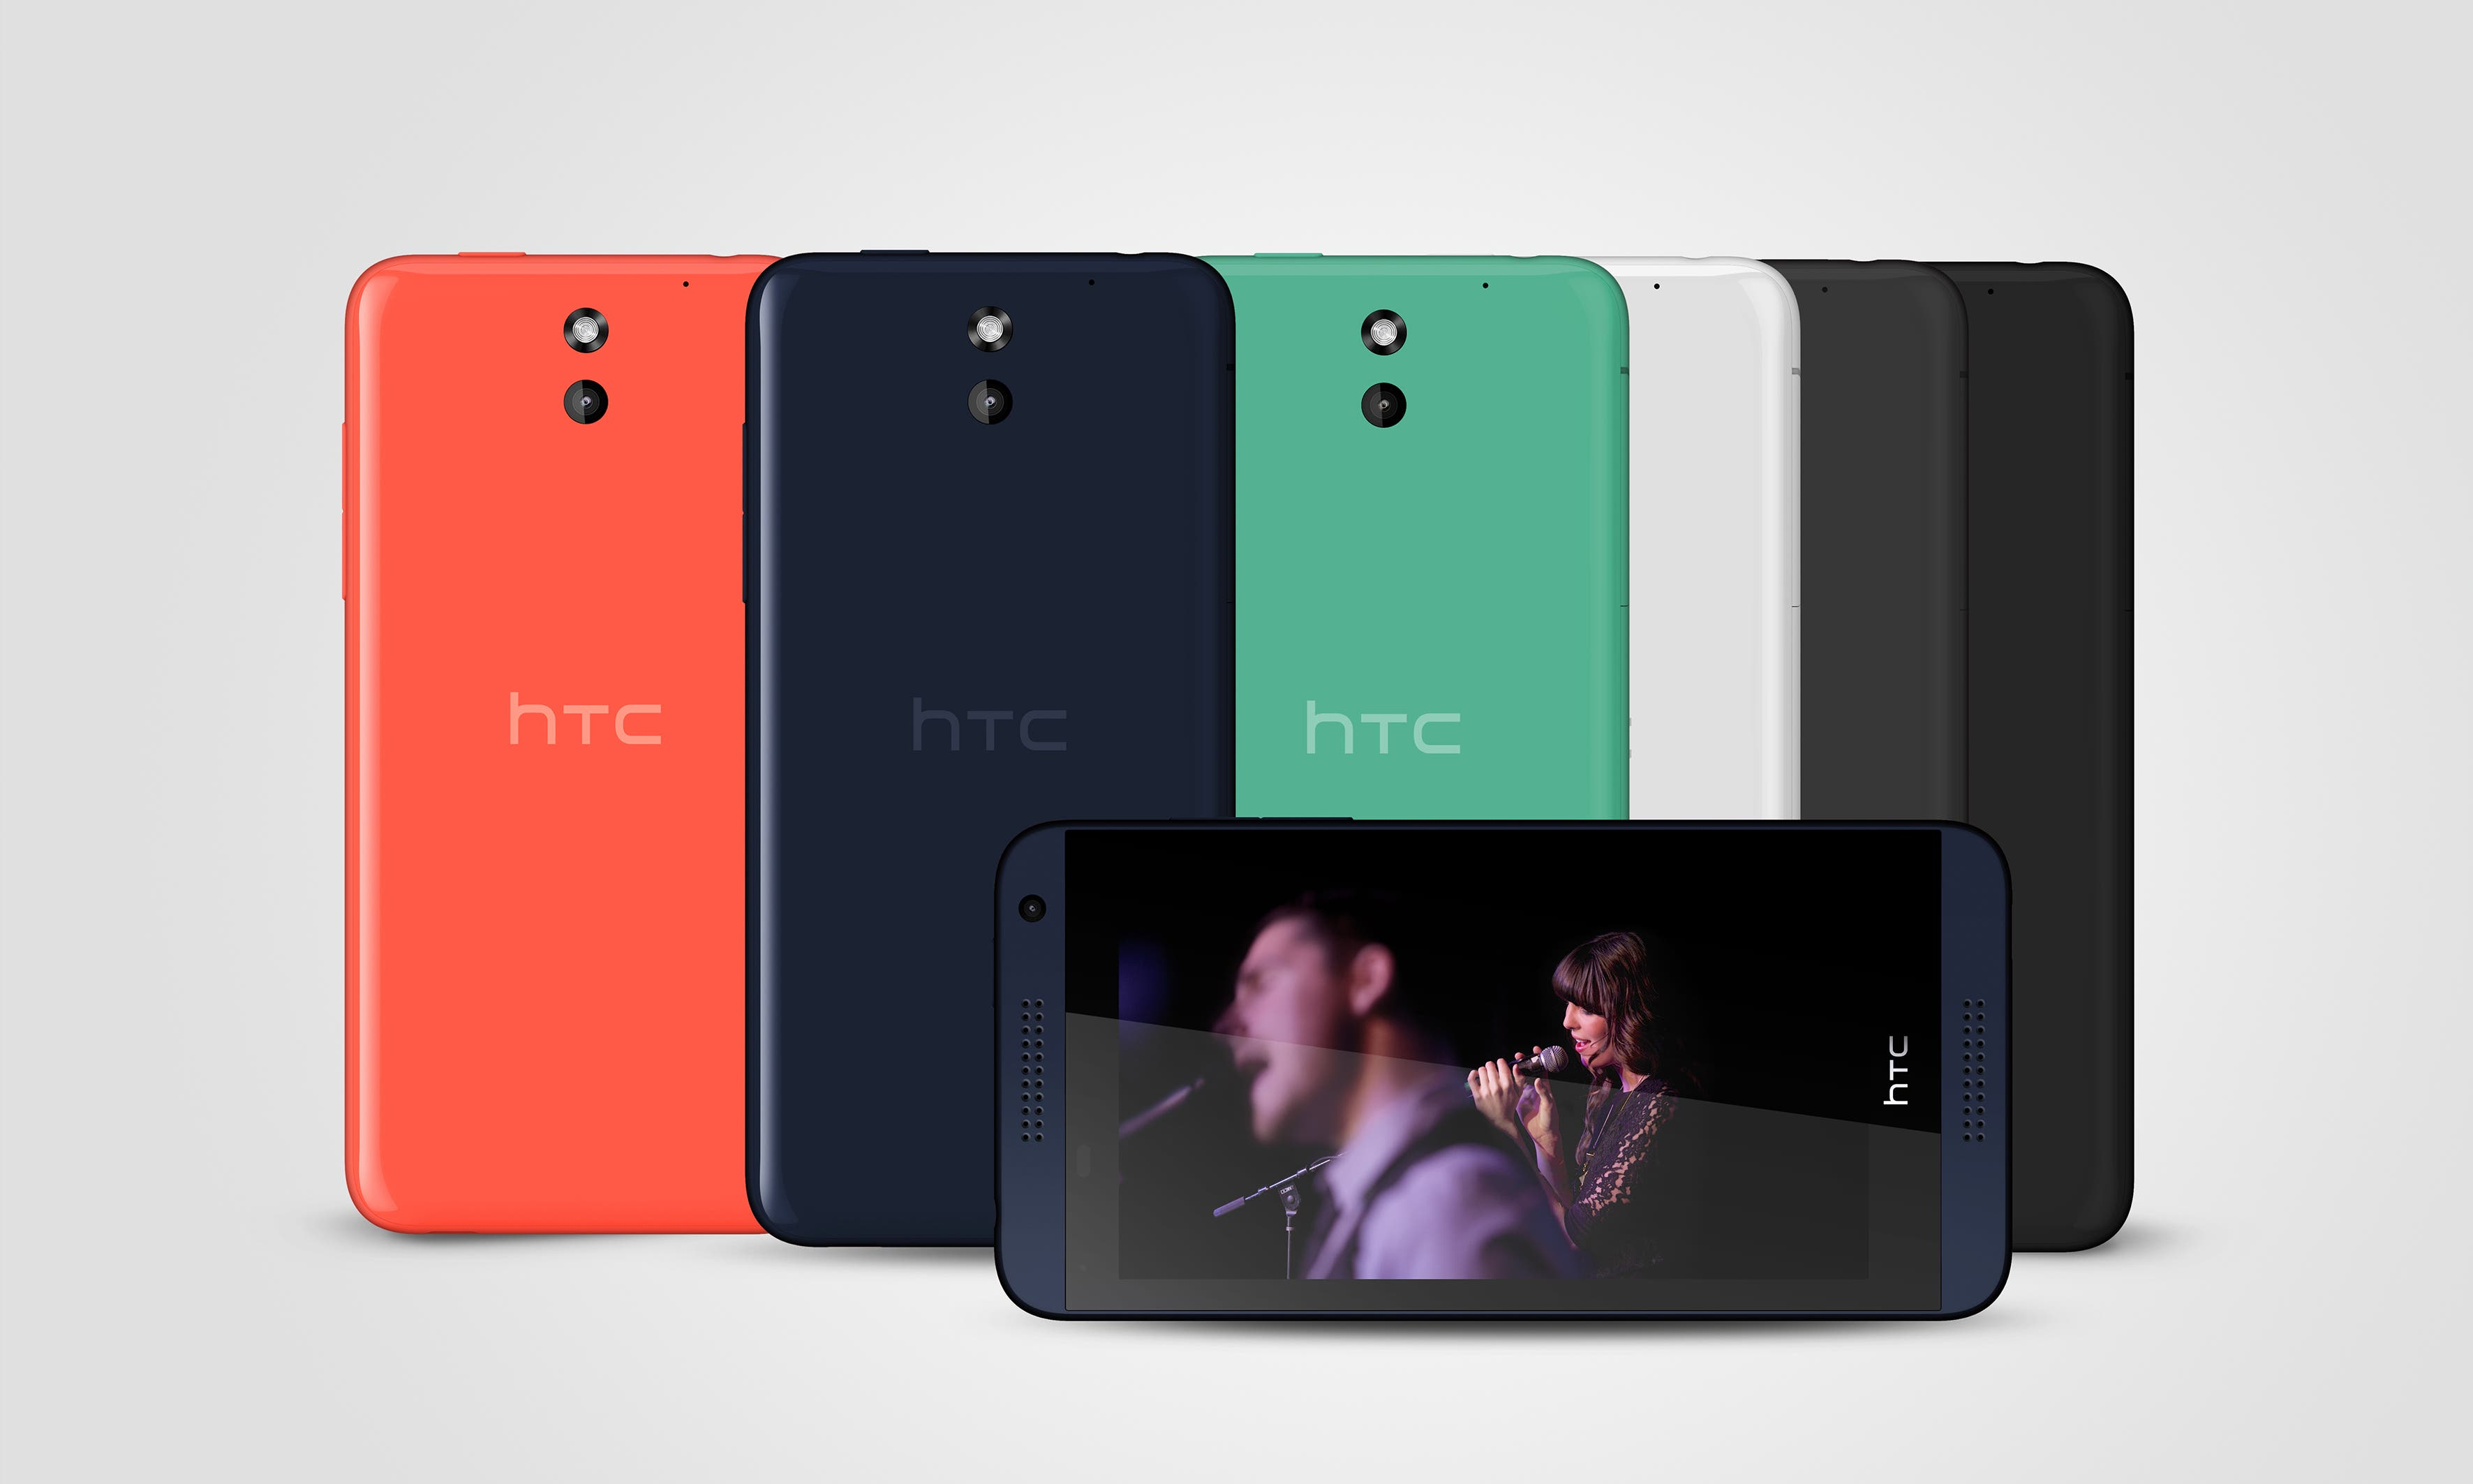 HTC Desire 610 All Colors